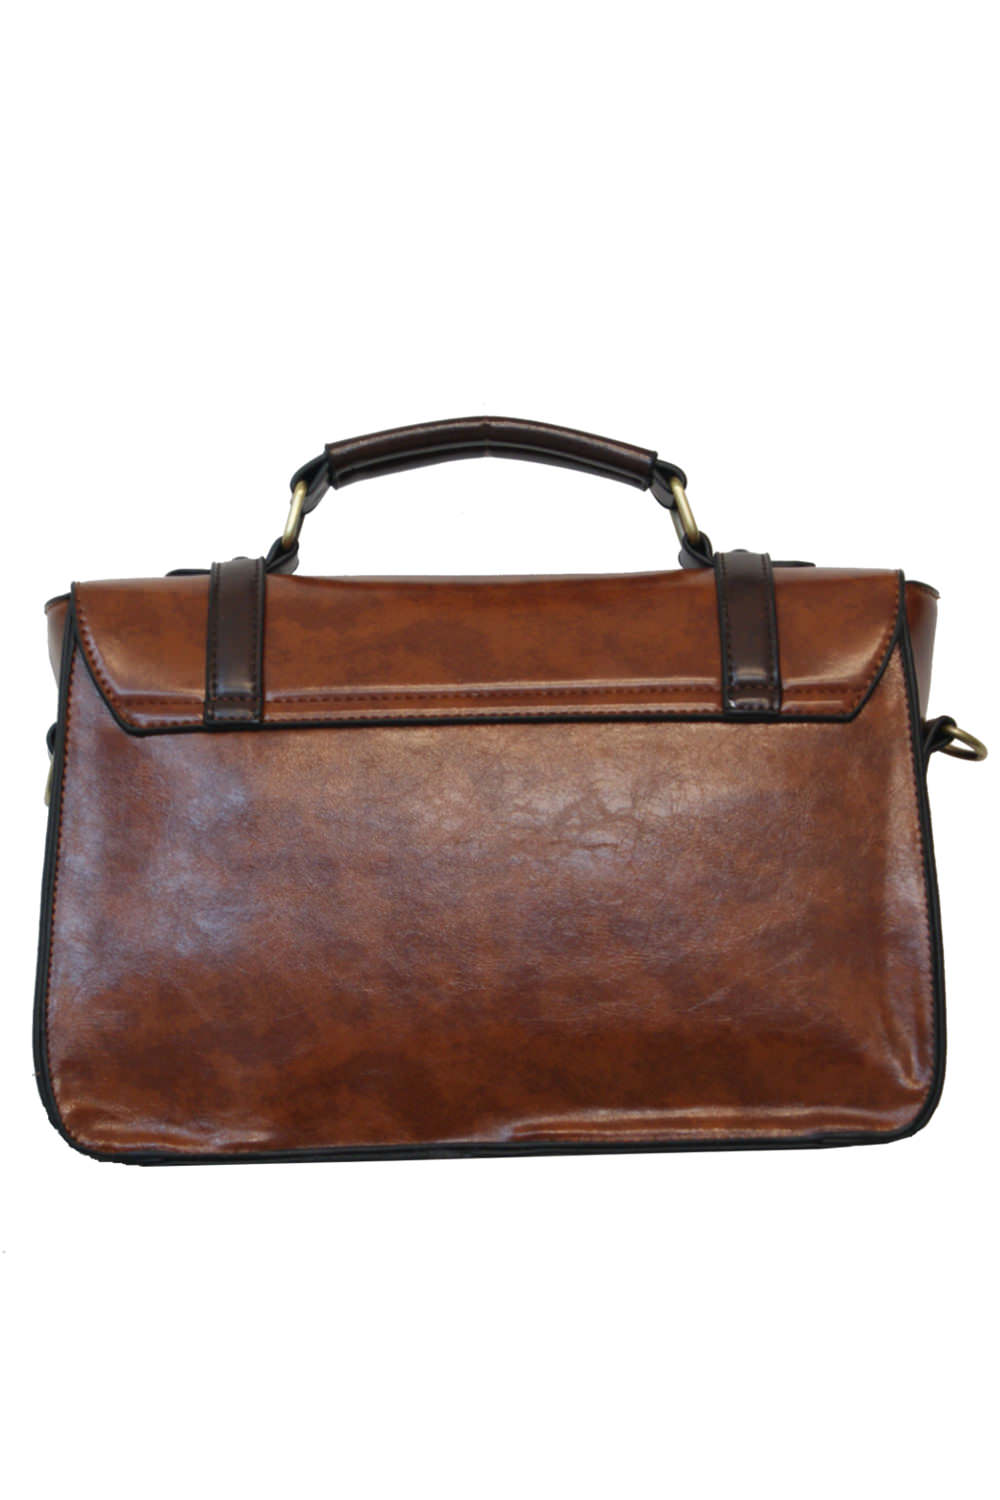 7fc0fa96f9f9 Steampunk Banned light brown and coffee fack leather handbag satchel ...